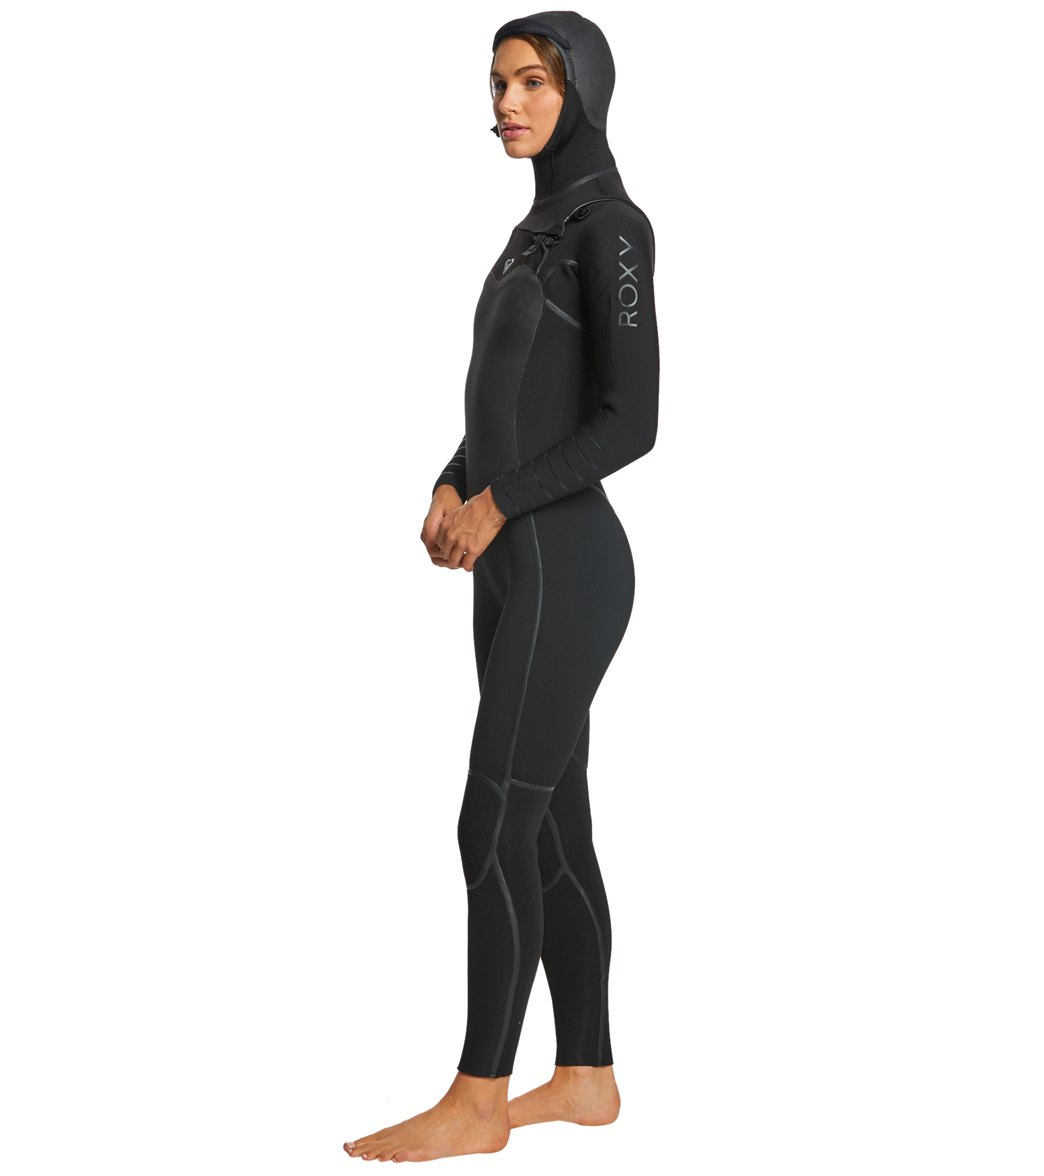 dcb040bef6978 Roxy Women s 5 4 3MM Syncro Plus Hooded Chest Zip Wetsuit at ...